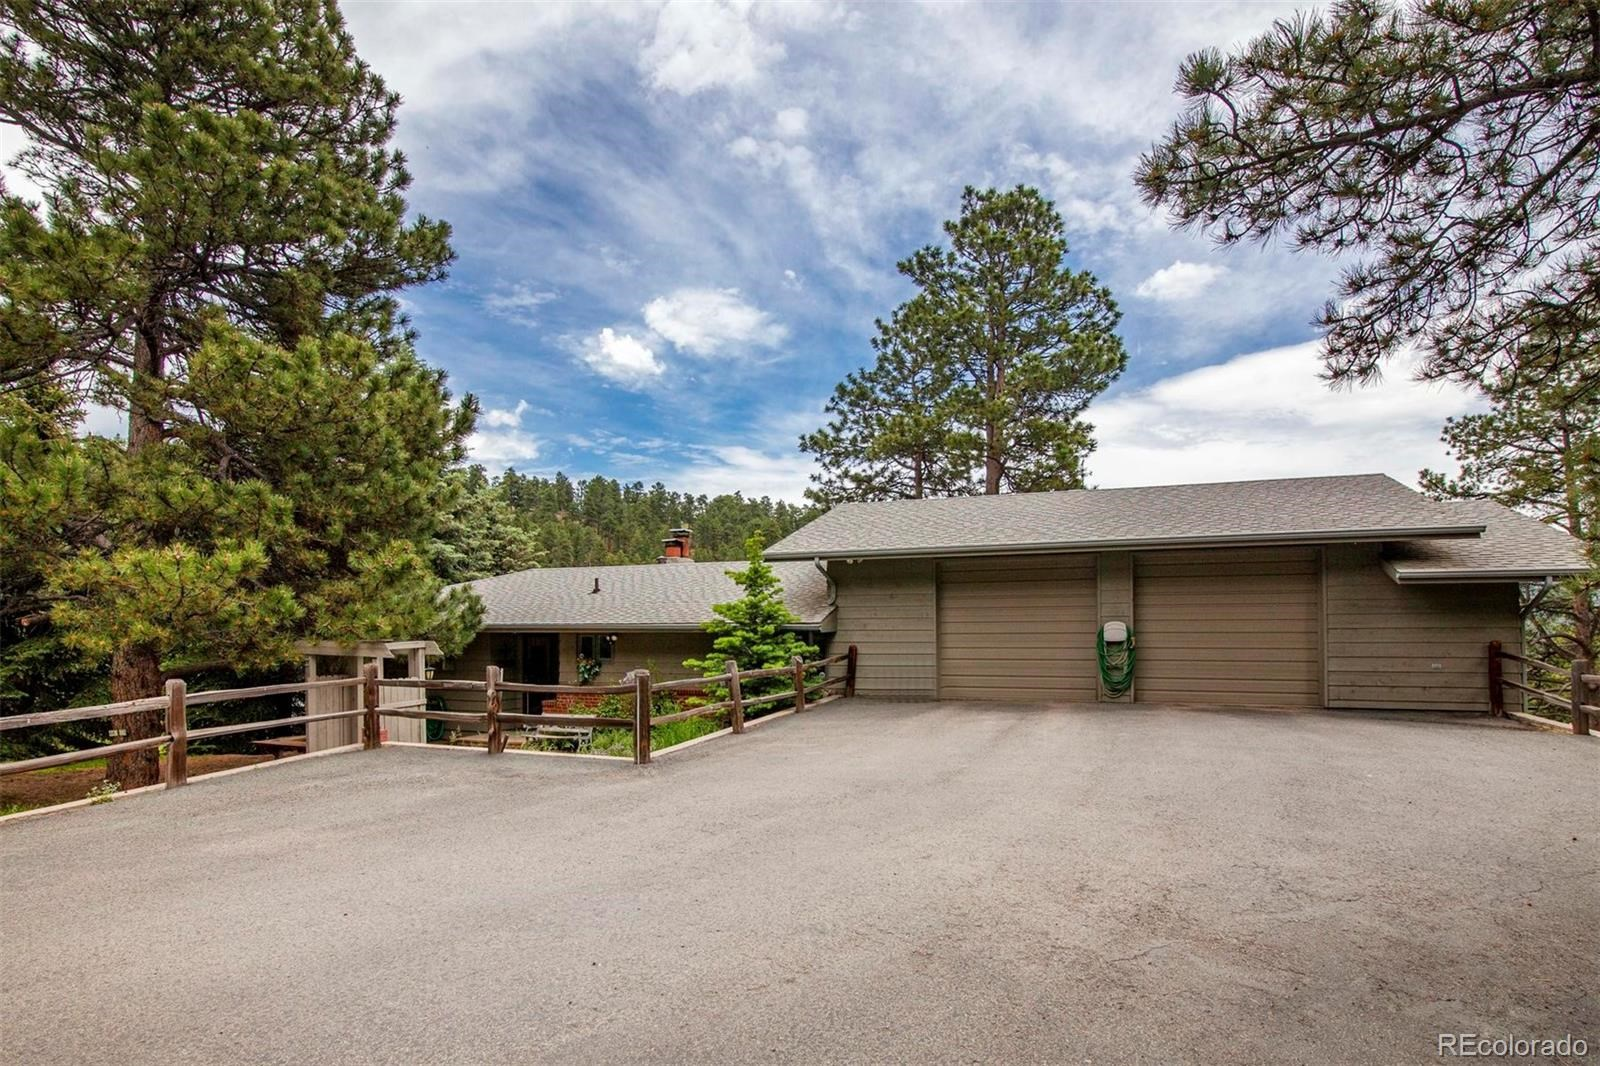 MLS# 5479240 - 27 - 5002 S Syndt Road, Evergreen, CO 80439